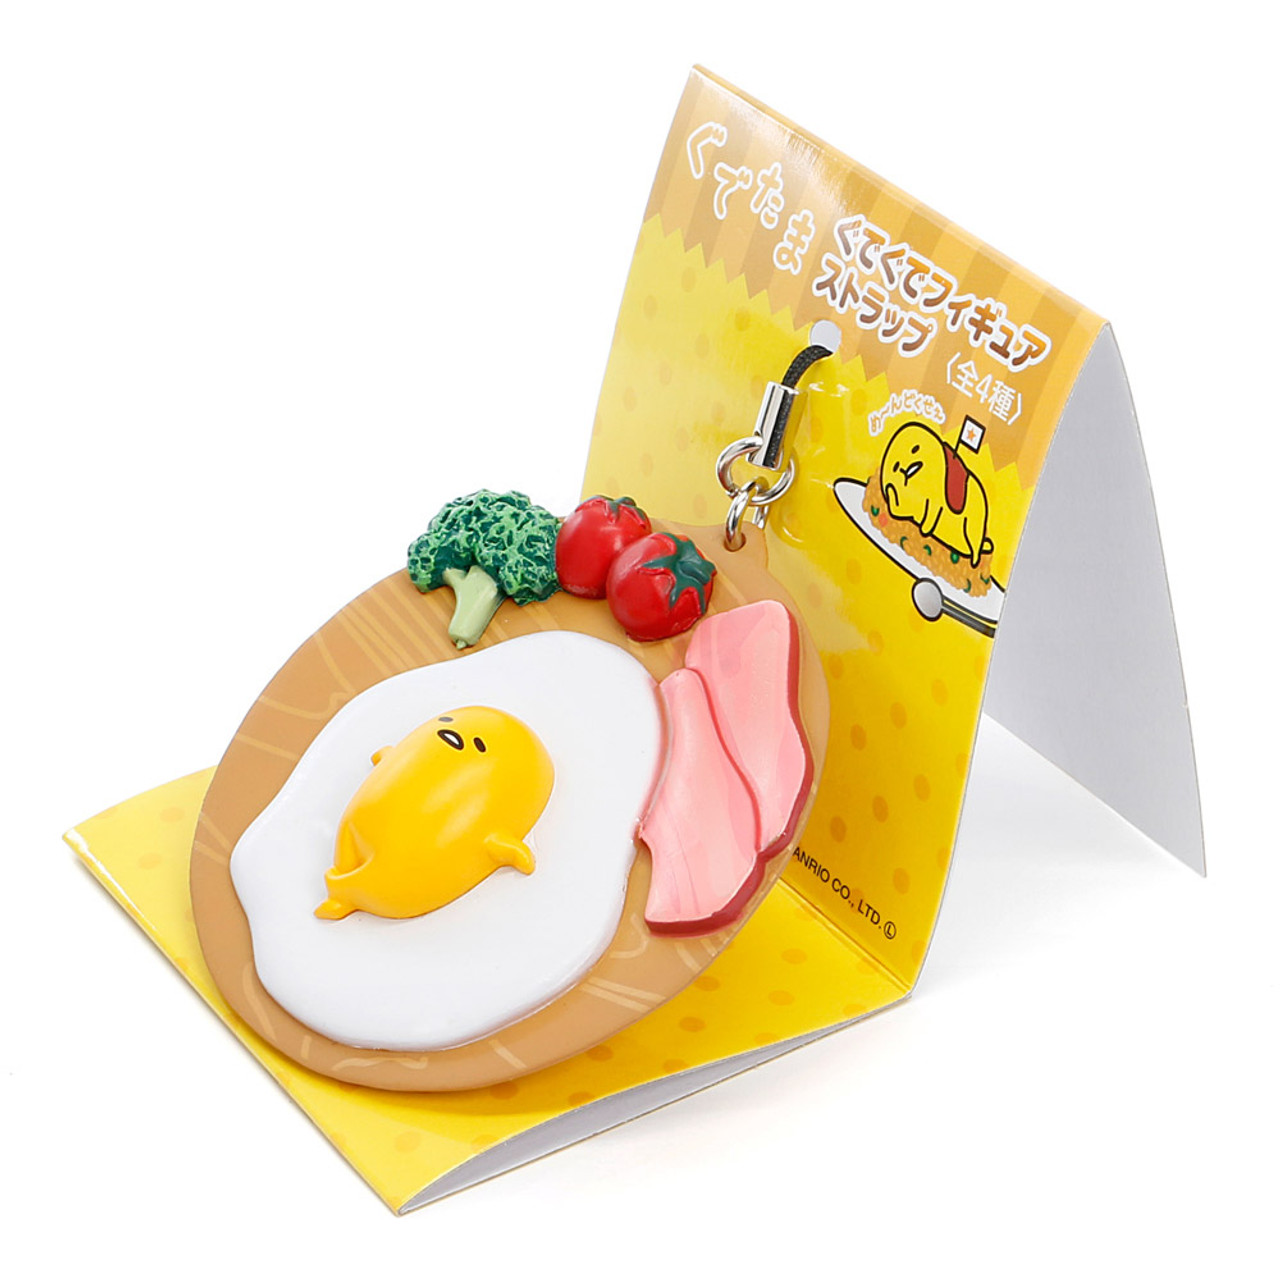 Sanrio Gudetama Lazy Egg Omelet Mascot Mobile Charms - Breakfast Dish ( 45 Degree Angle View )